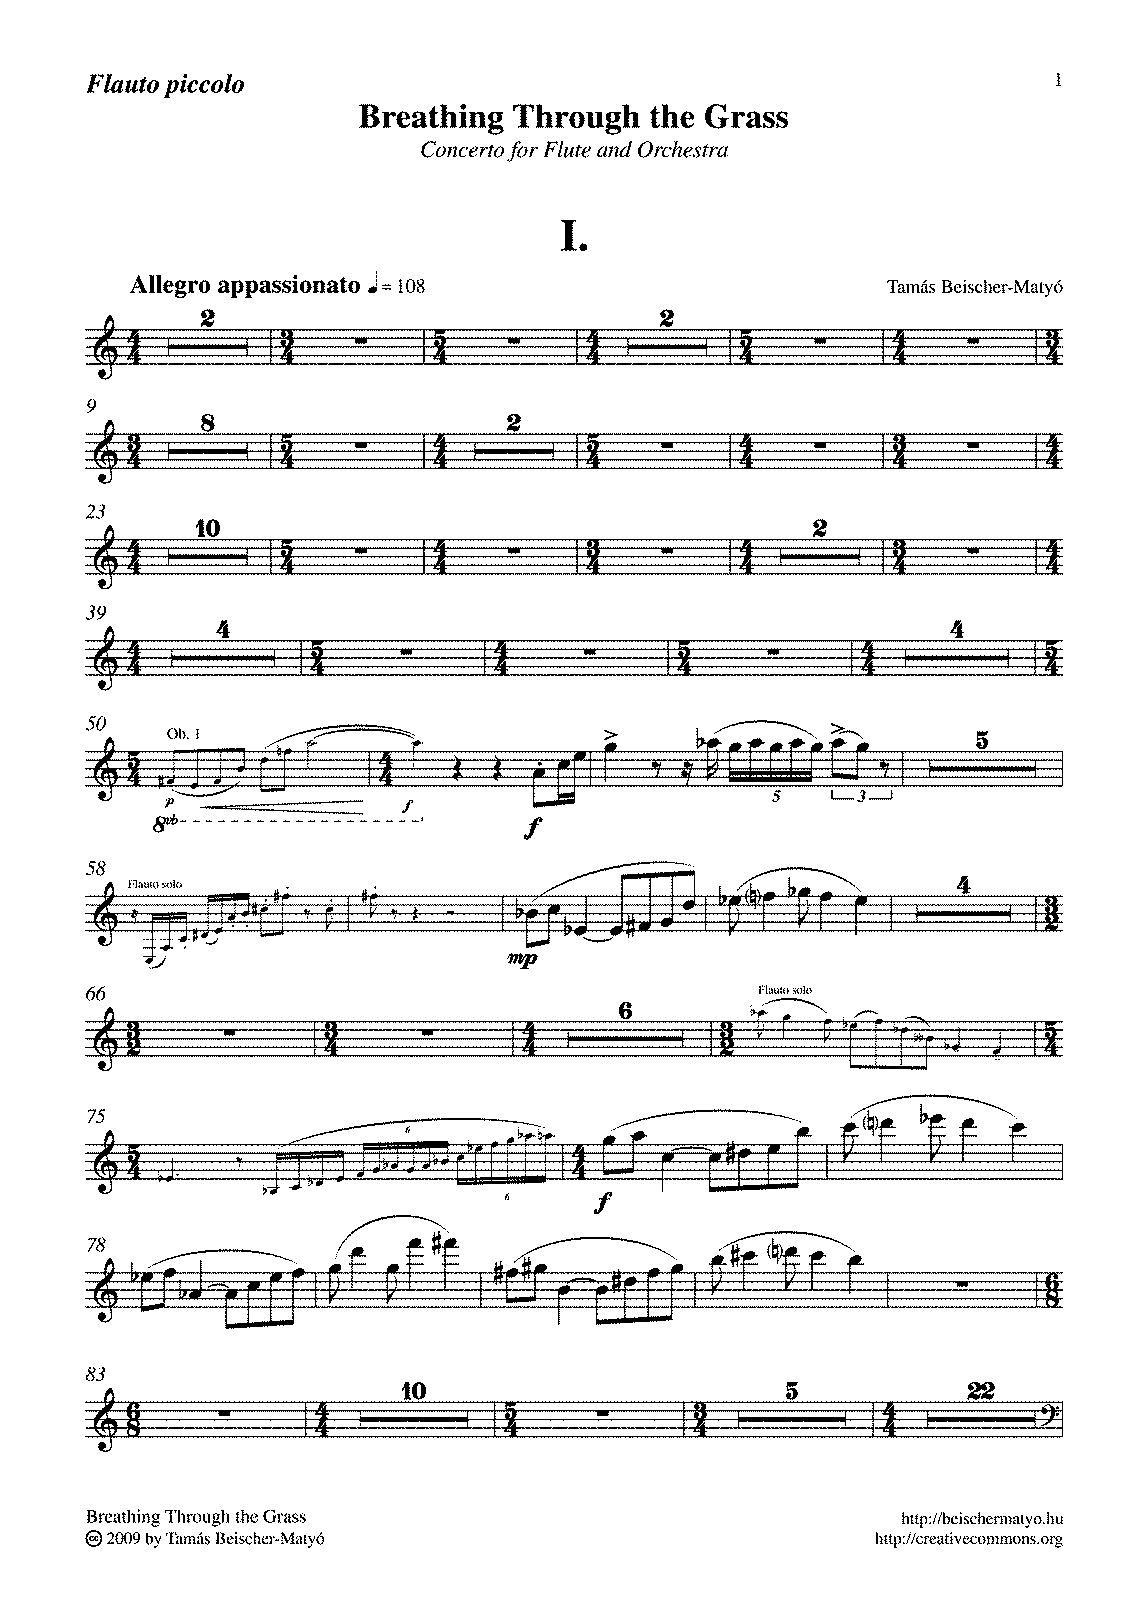 PMLP140510-Breathing Through the Grass - Flauto piccolo.pdf